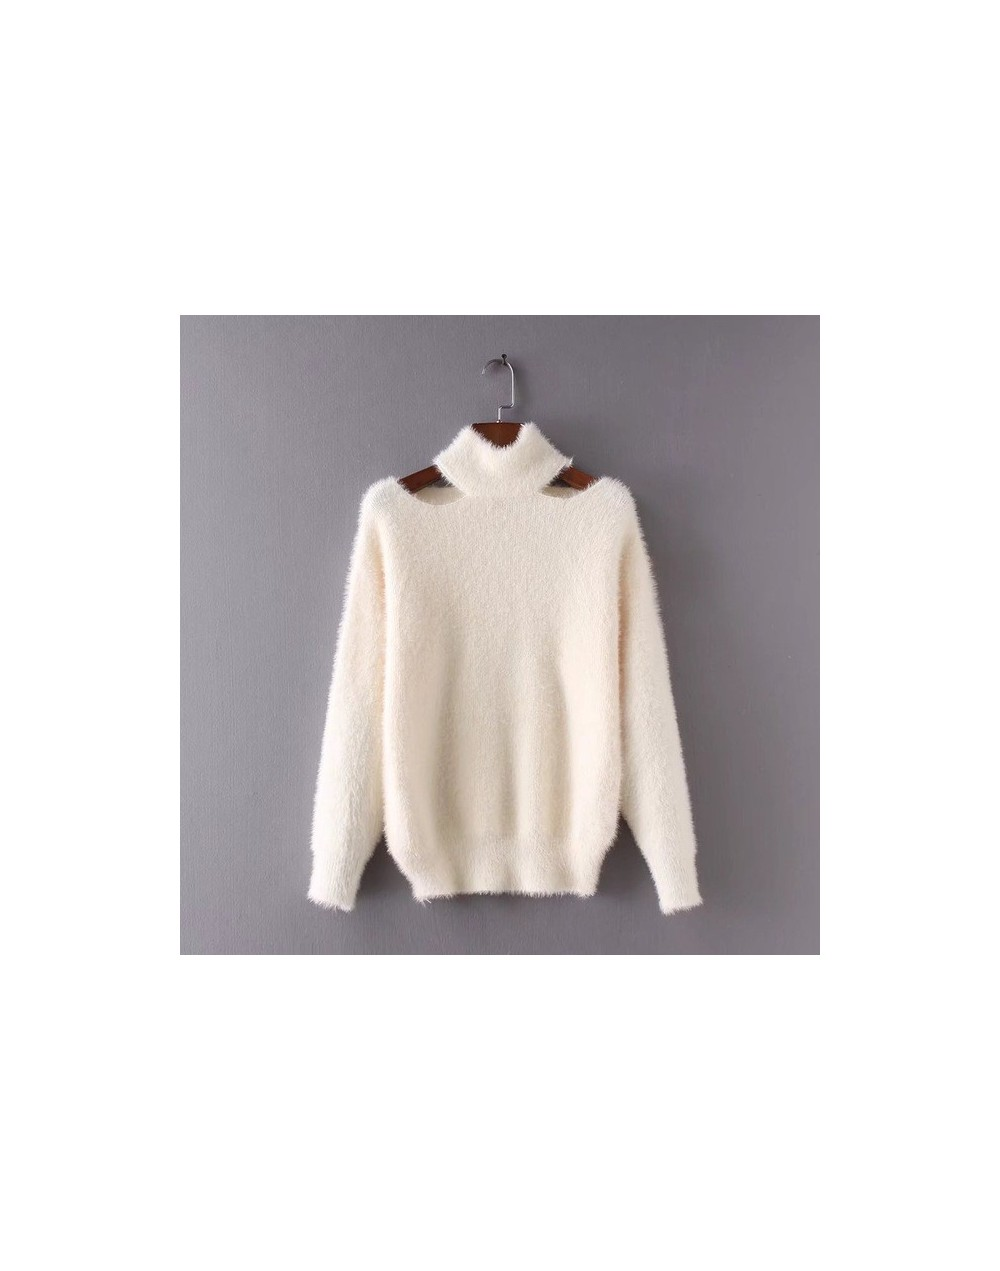 2018 Autumn Winter Fashion Sweaters Korean Fashion Sexy Pullovers Mohair Jumpers Halter Loose Tops 2018 Sexy Fur Sweater - J...